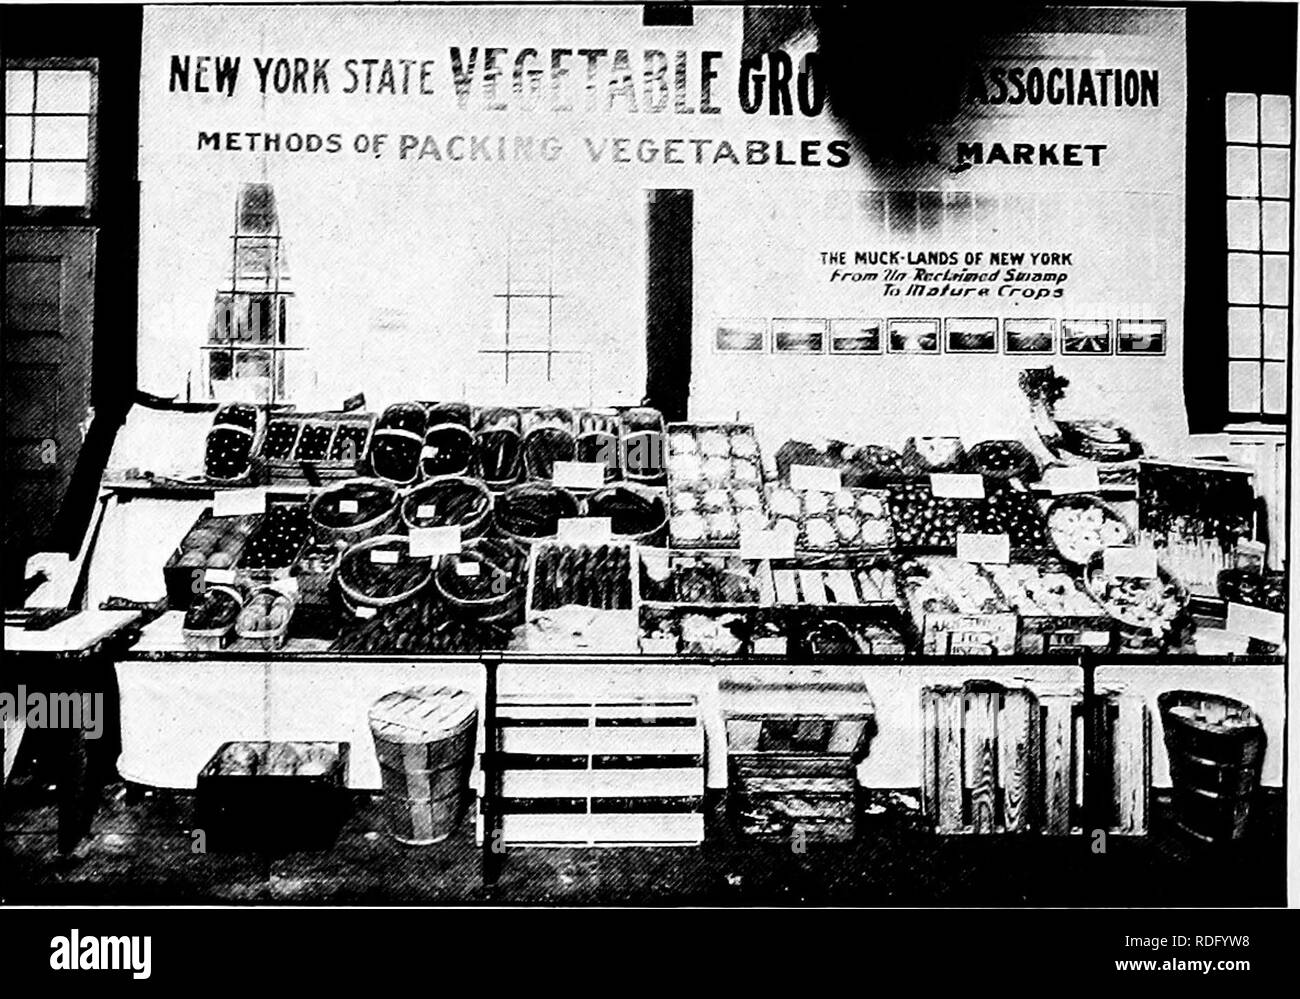 . The vegetable industry in New York state ... Vegetables; Gardening. 13Y0 The Vegetable Industry in New Yoek State Buffalo, Angola and Syracuse. It is probable that many others will be held next year. This was the contribution of 1914. The prime work for 1915, which is now under way, is the es- tablishment of a crop report service for the benefit of members. Sheets are sent out to all members and these are filled out and sent in to headquarters. This work is under the able and ener- getic leadership of Professor W. B. Nissley of the Long Island School of Agriculture at Farmingdale.. Fig. 415. Stock Photo